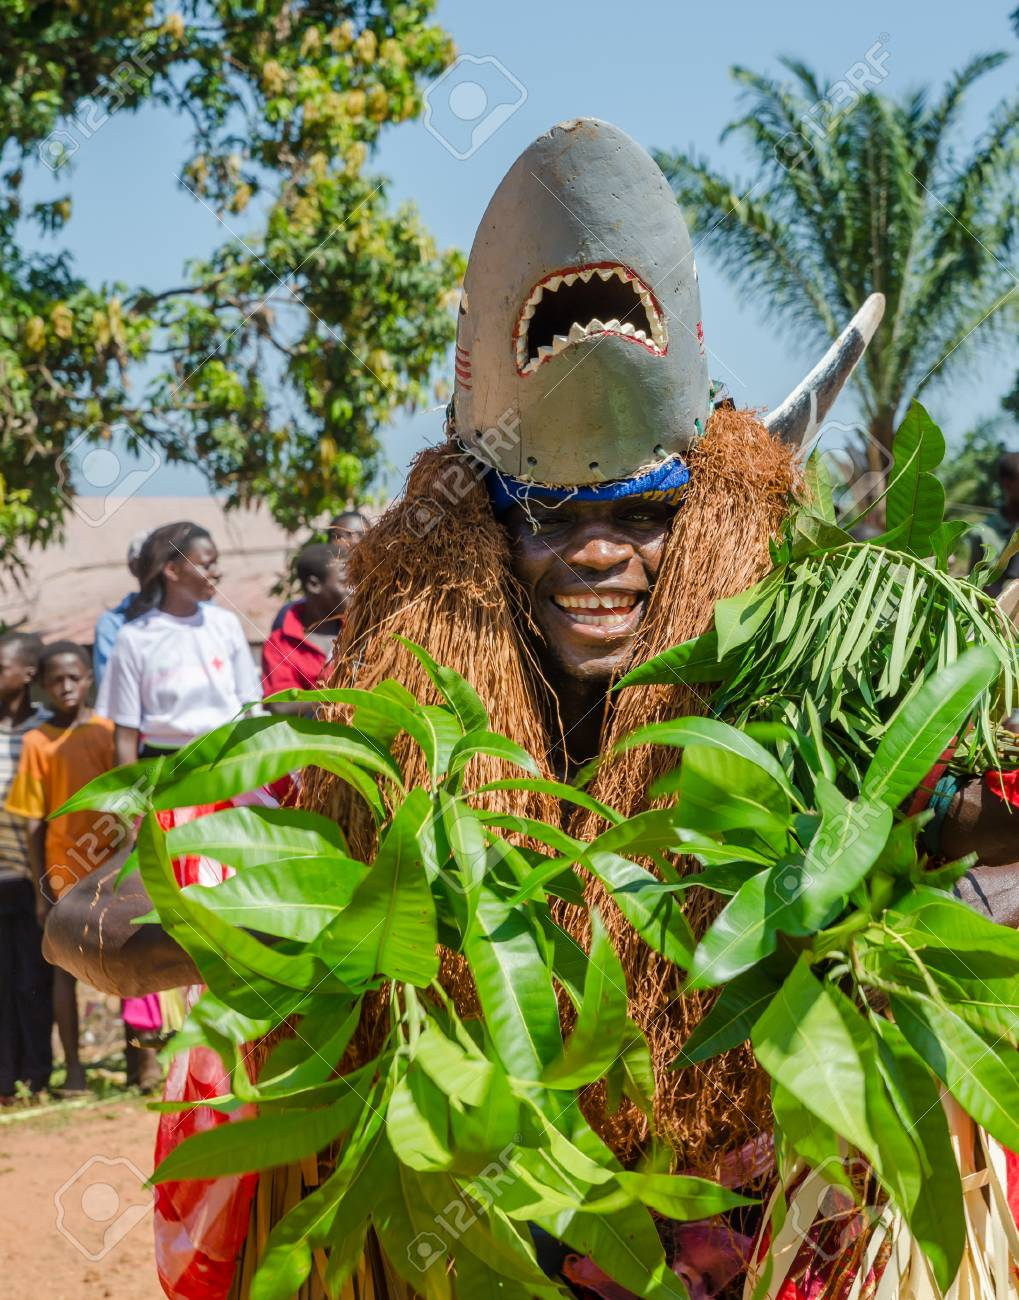 Bubaque, Guinea Bissau - December 07, 2013: Unidentified African man in traditional shark costume doing ritual dance - 117052554